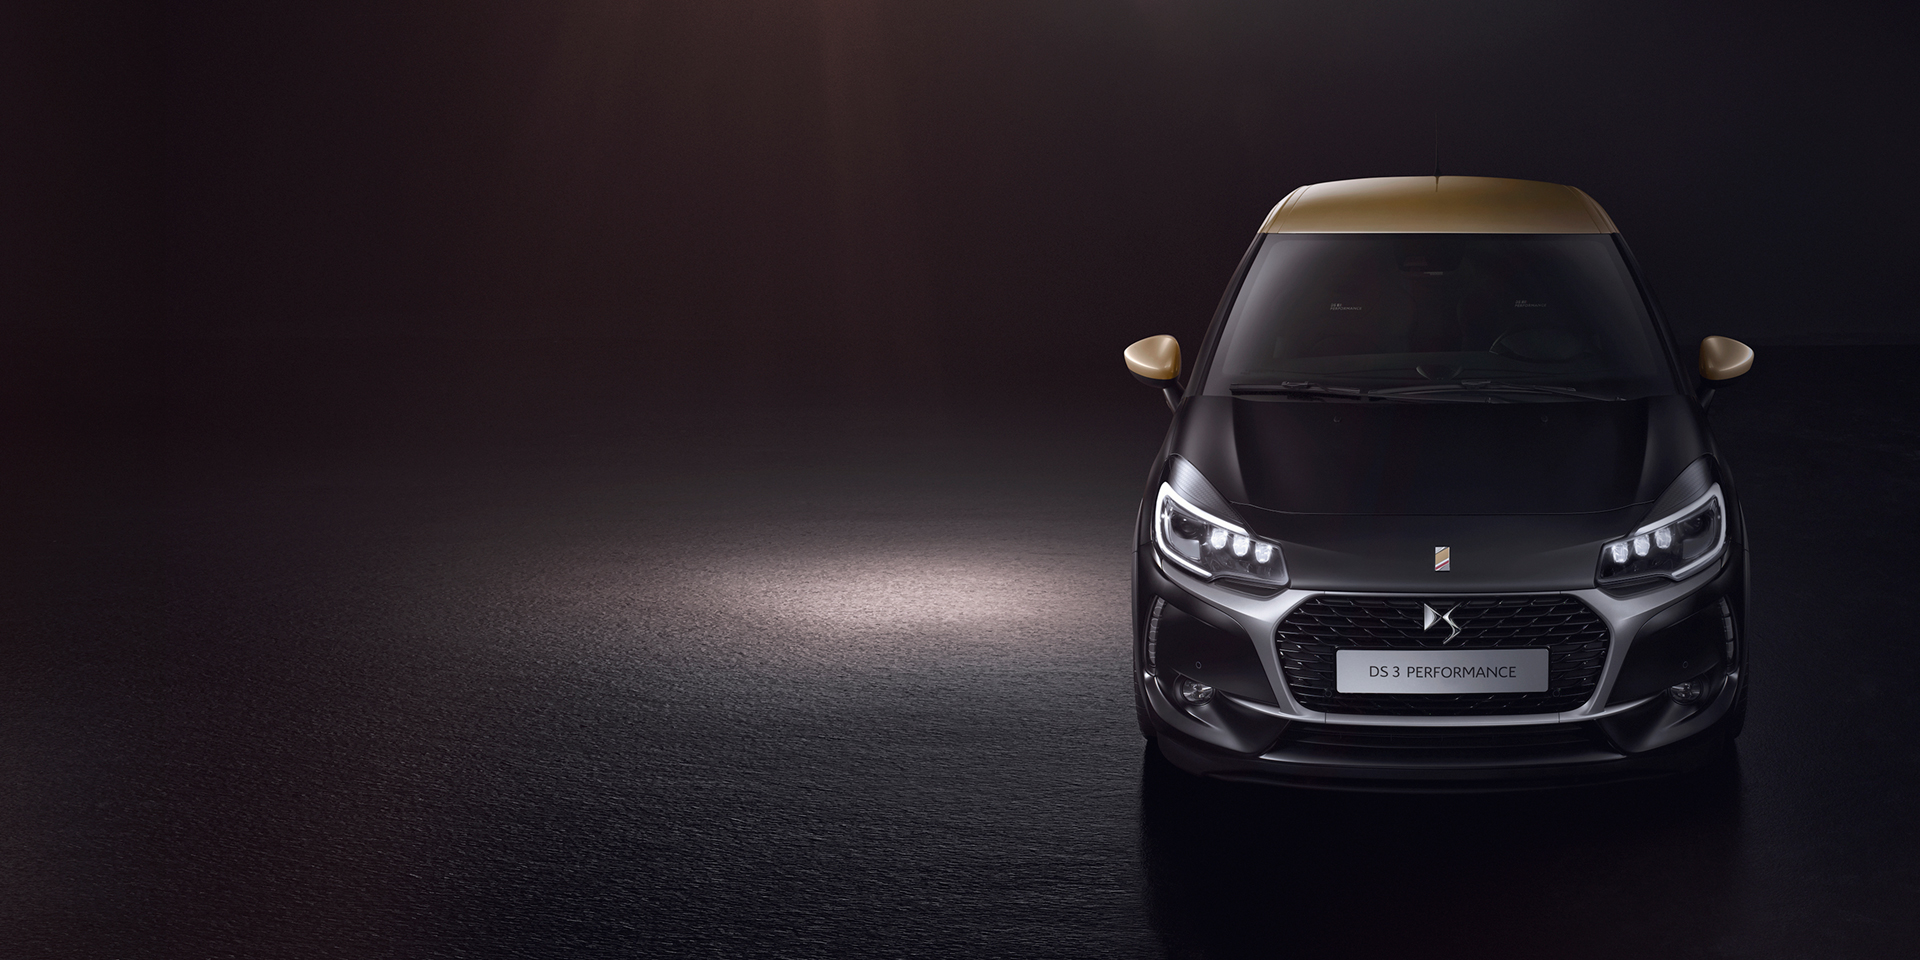 DS Automobiles - 2016 - DS 3 Performance - avant / front